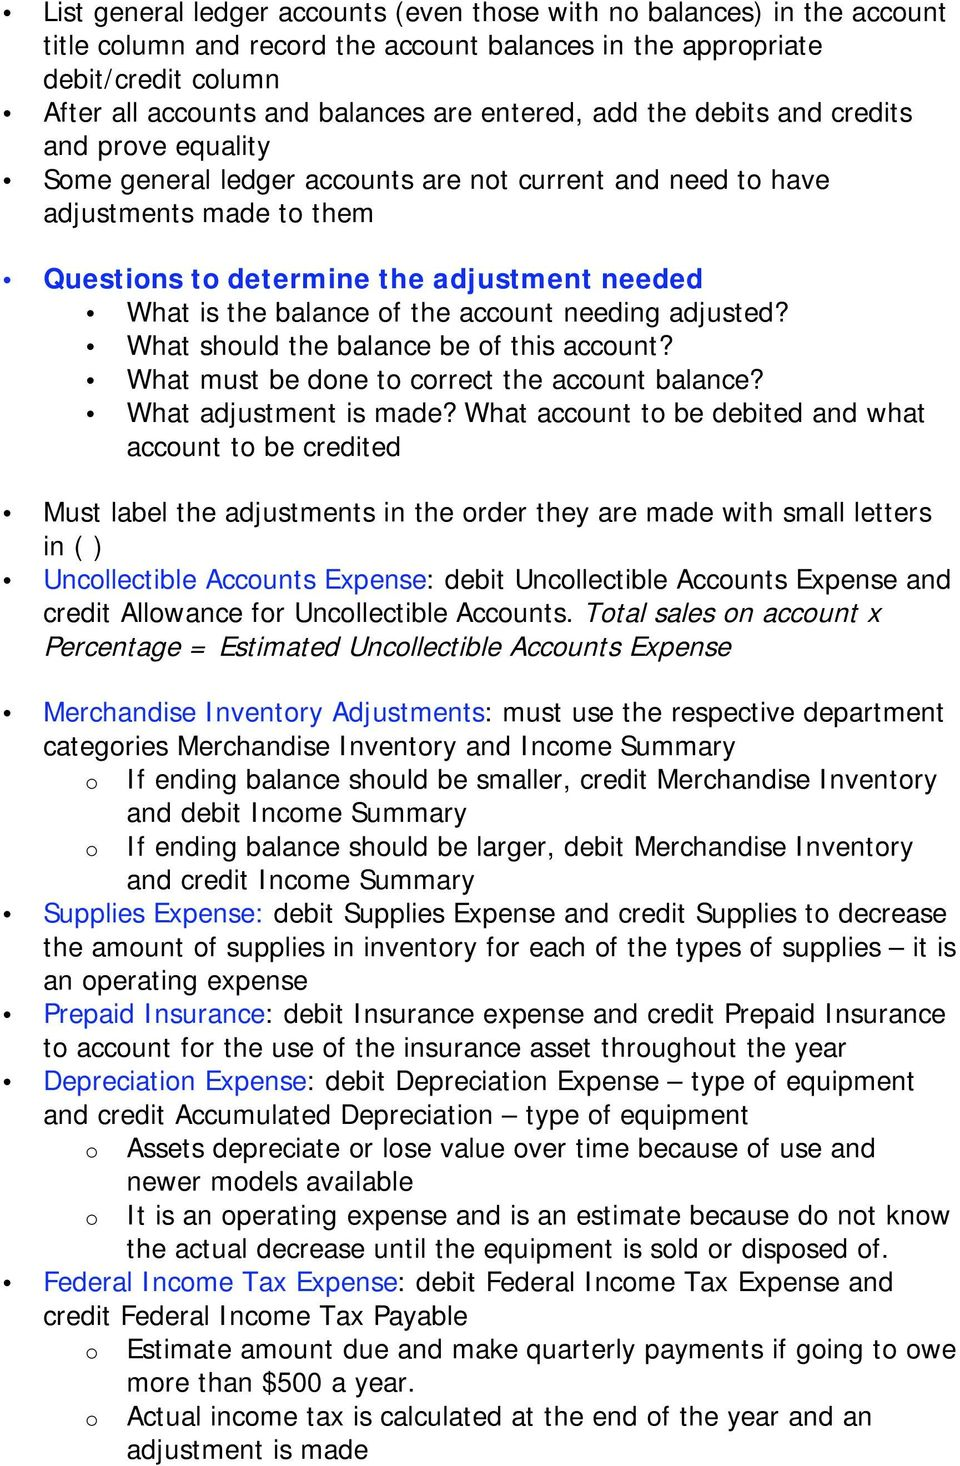 balance of the account needing adjusted? What should the balance be of this account? What must be done to correct the account balance? What adjustment is made?